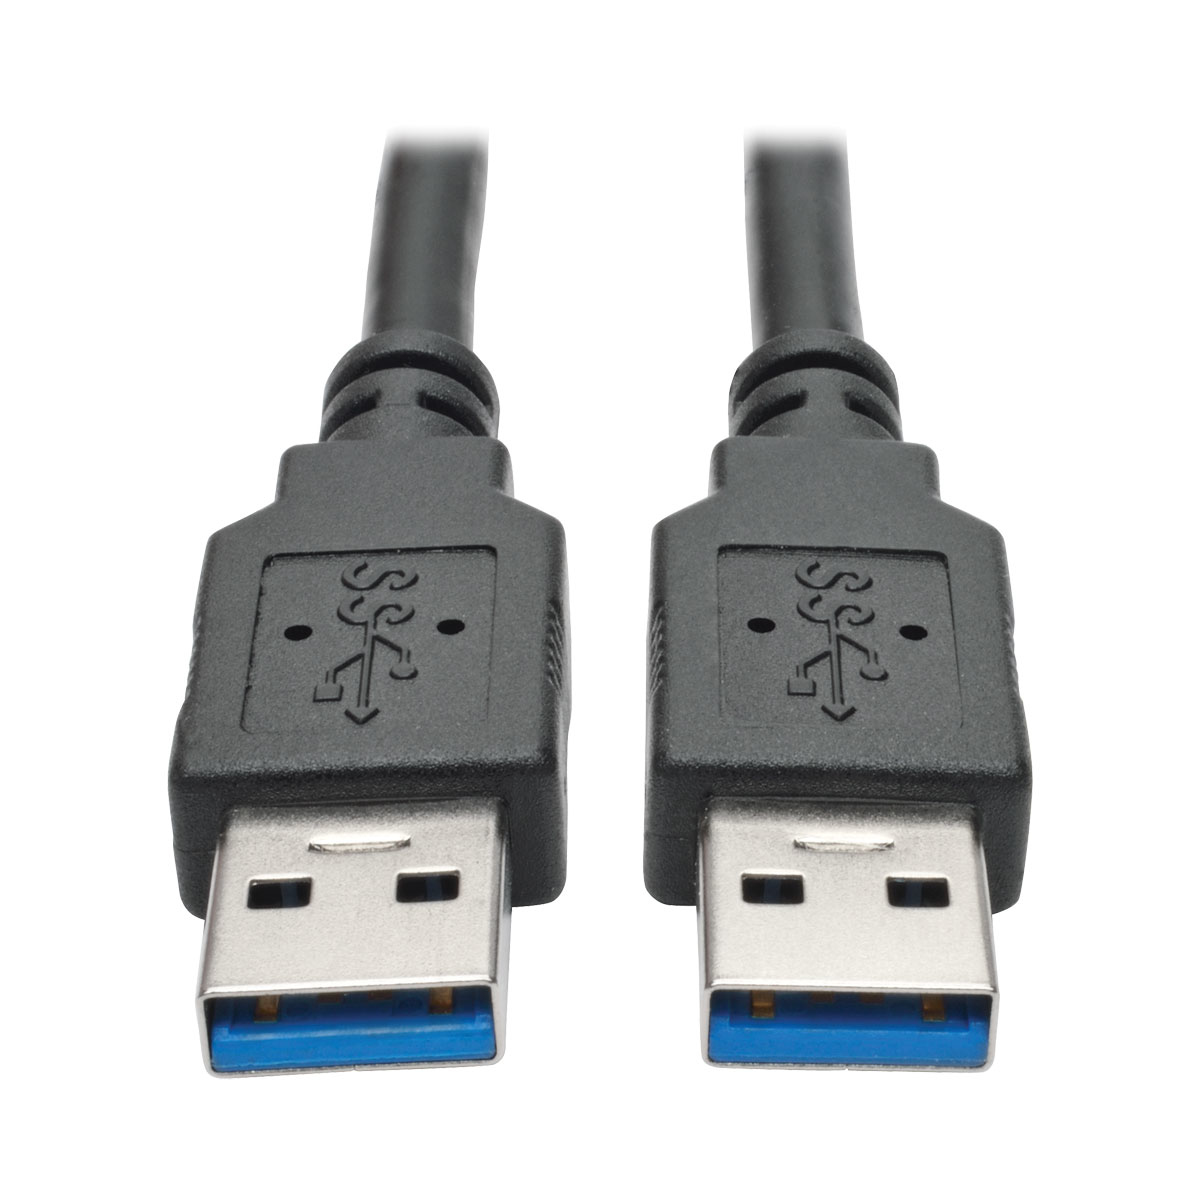 6ft USB 3.0 SuperSpeed A/A Cable M/M 28/24 AWG 5 Gbps Black 6 - USB cable - USB Type A (M) to USB Type A (M) - USB 3.0 - 6 ft - molded - black